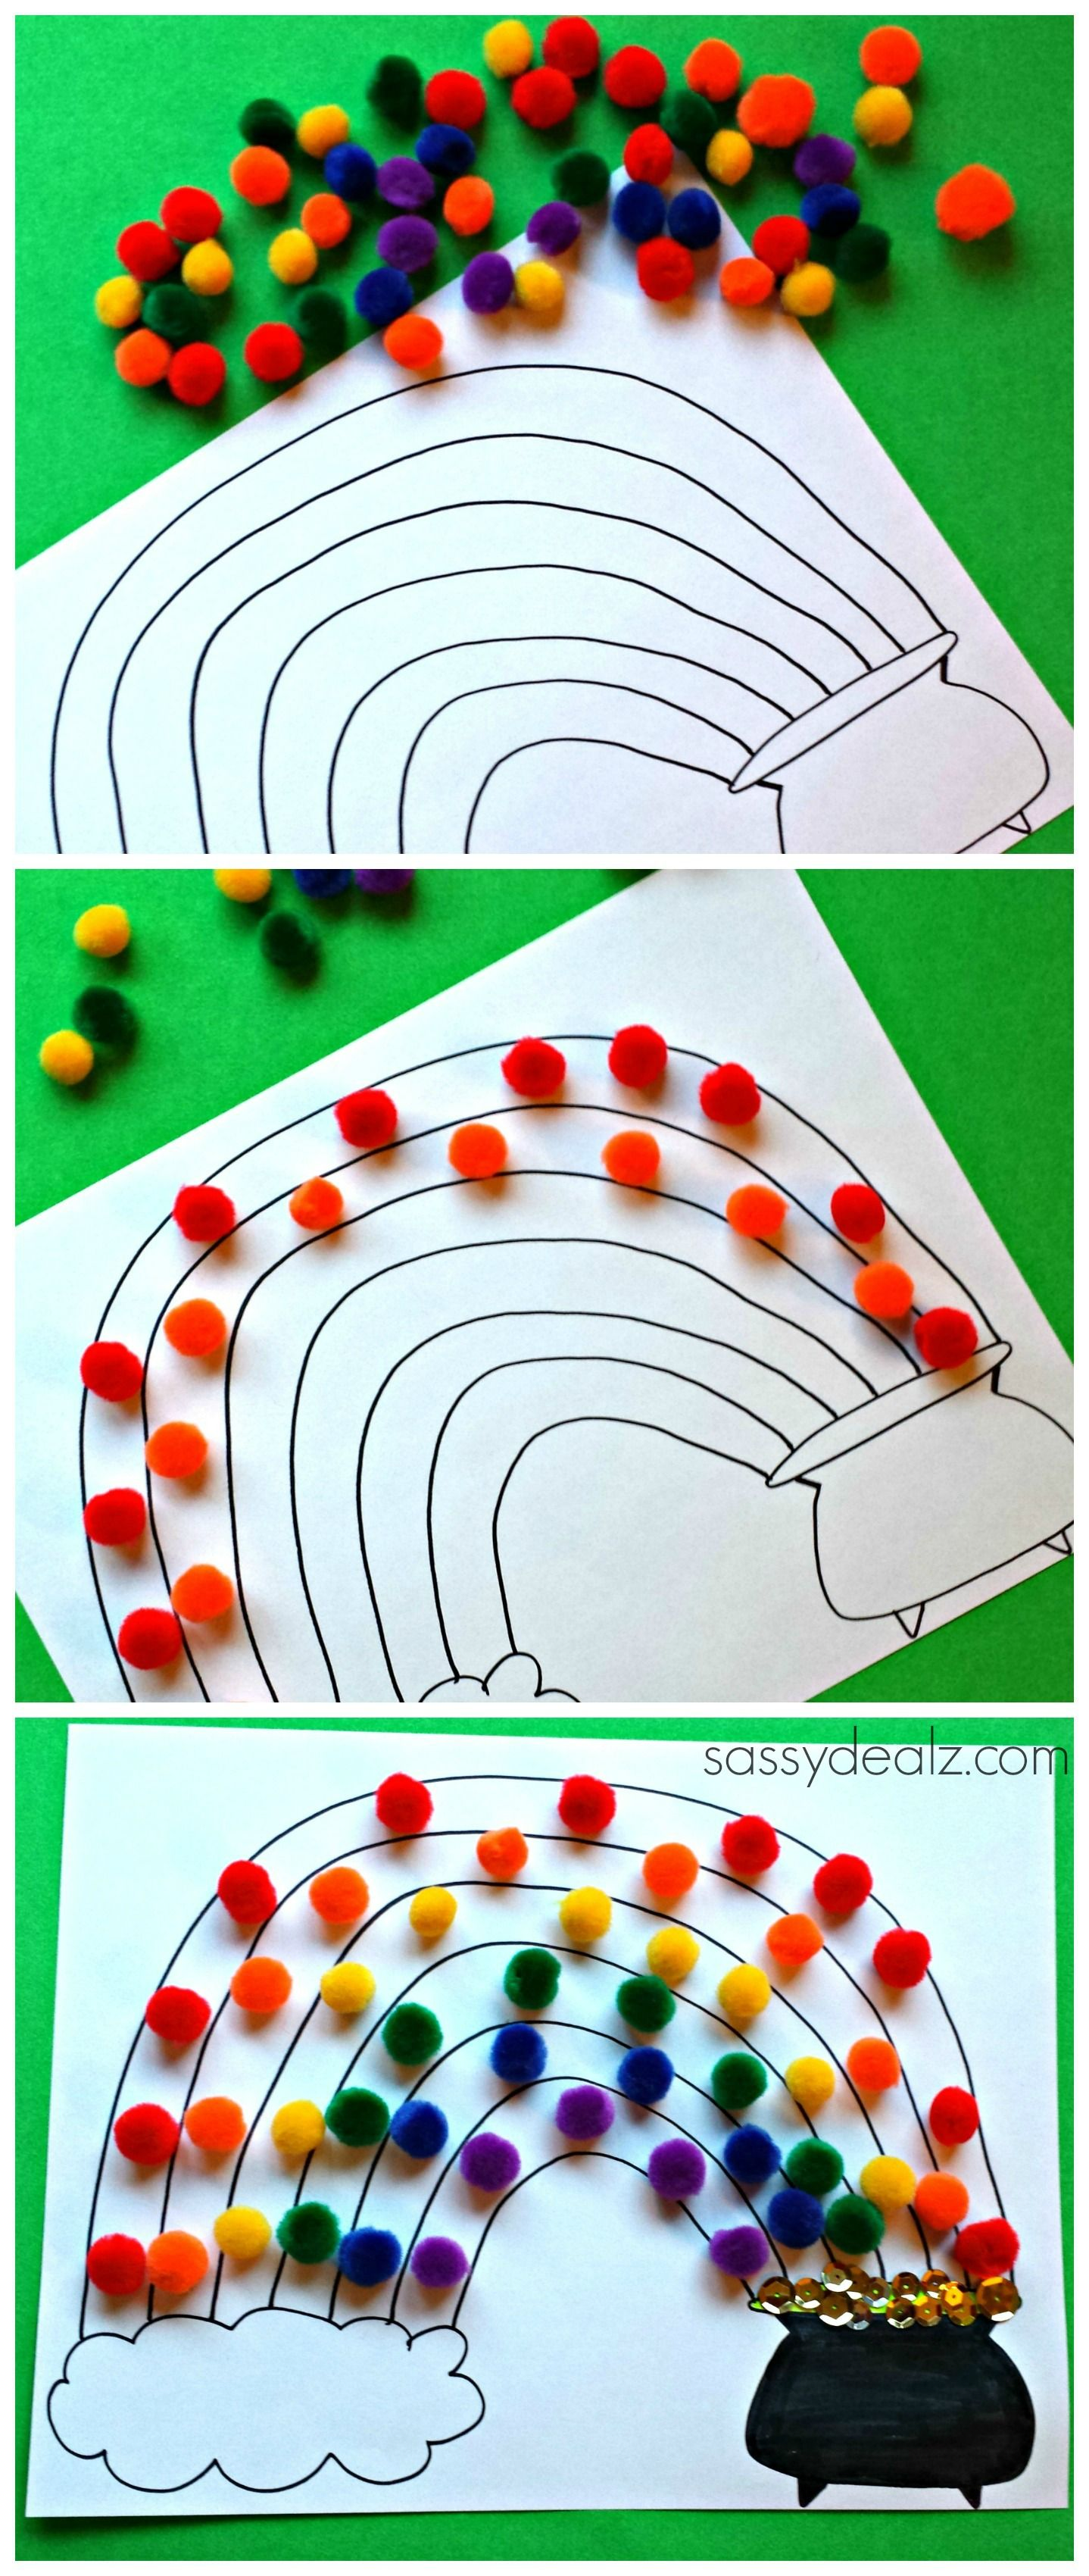 Pom Pom Craft for Kids! Great for a St. Patrick's day art project! #DIY #Rainbows #Pot of gold #free printable coloring page | http://www.sassydealz.com/2014/02/pom-pom-rainbow-craft-st-patricks-day-free-printable.html